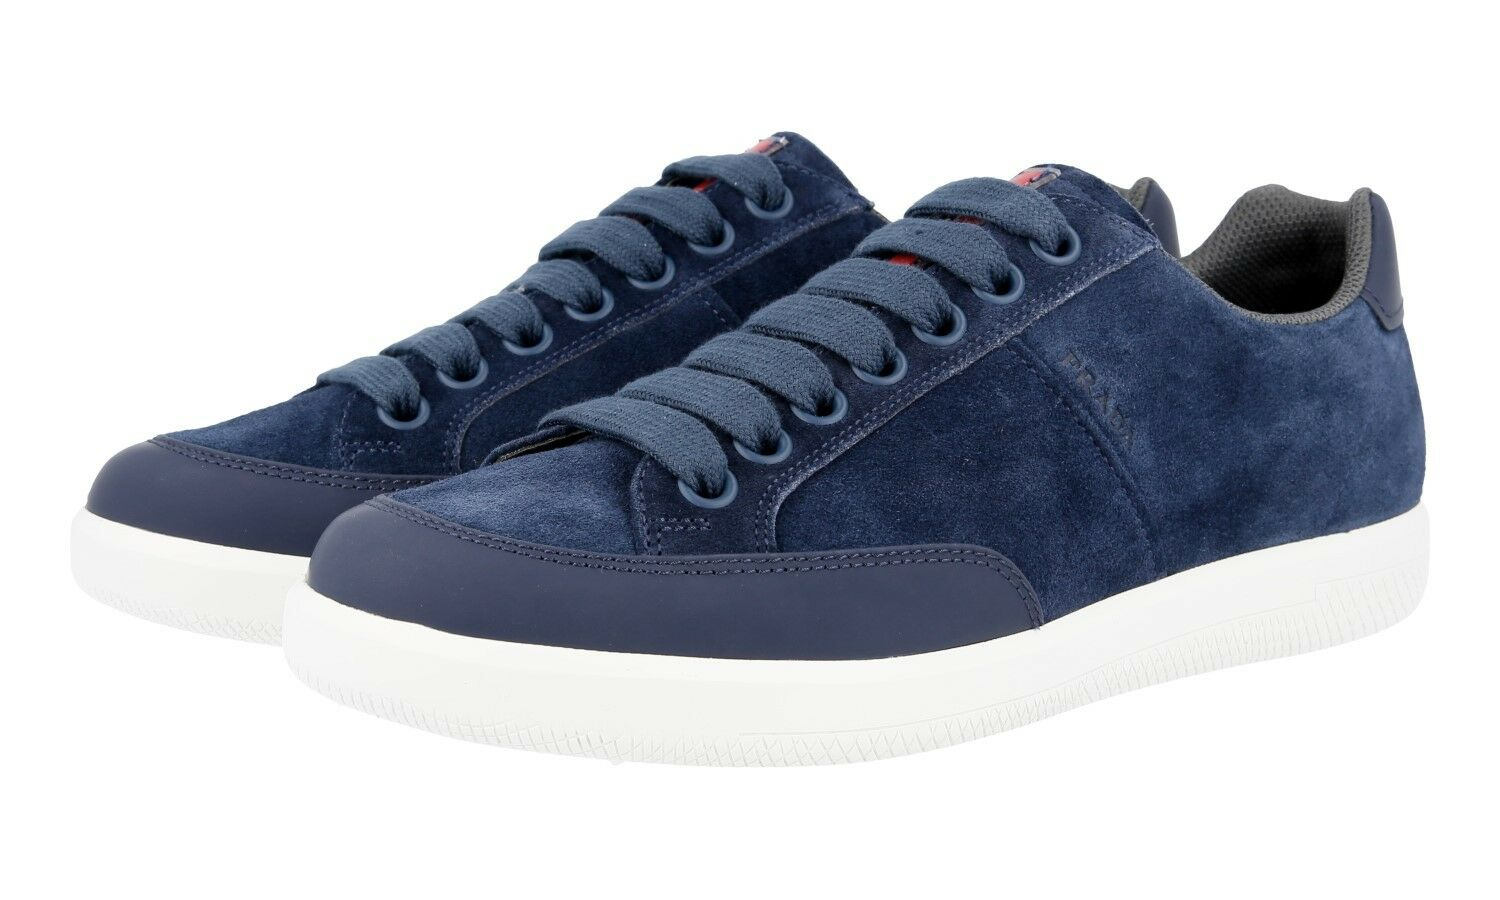 AUTHENTIC PRADA SNEAKERS SCARPE 4E3027 BLU SUEDE NEW US 7 EU 40 40,5